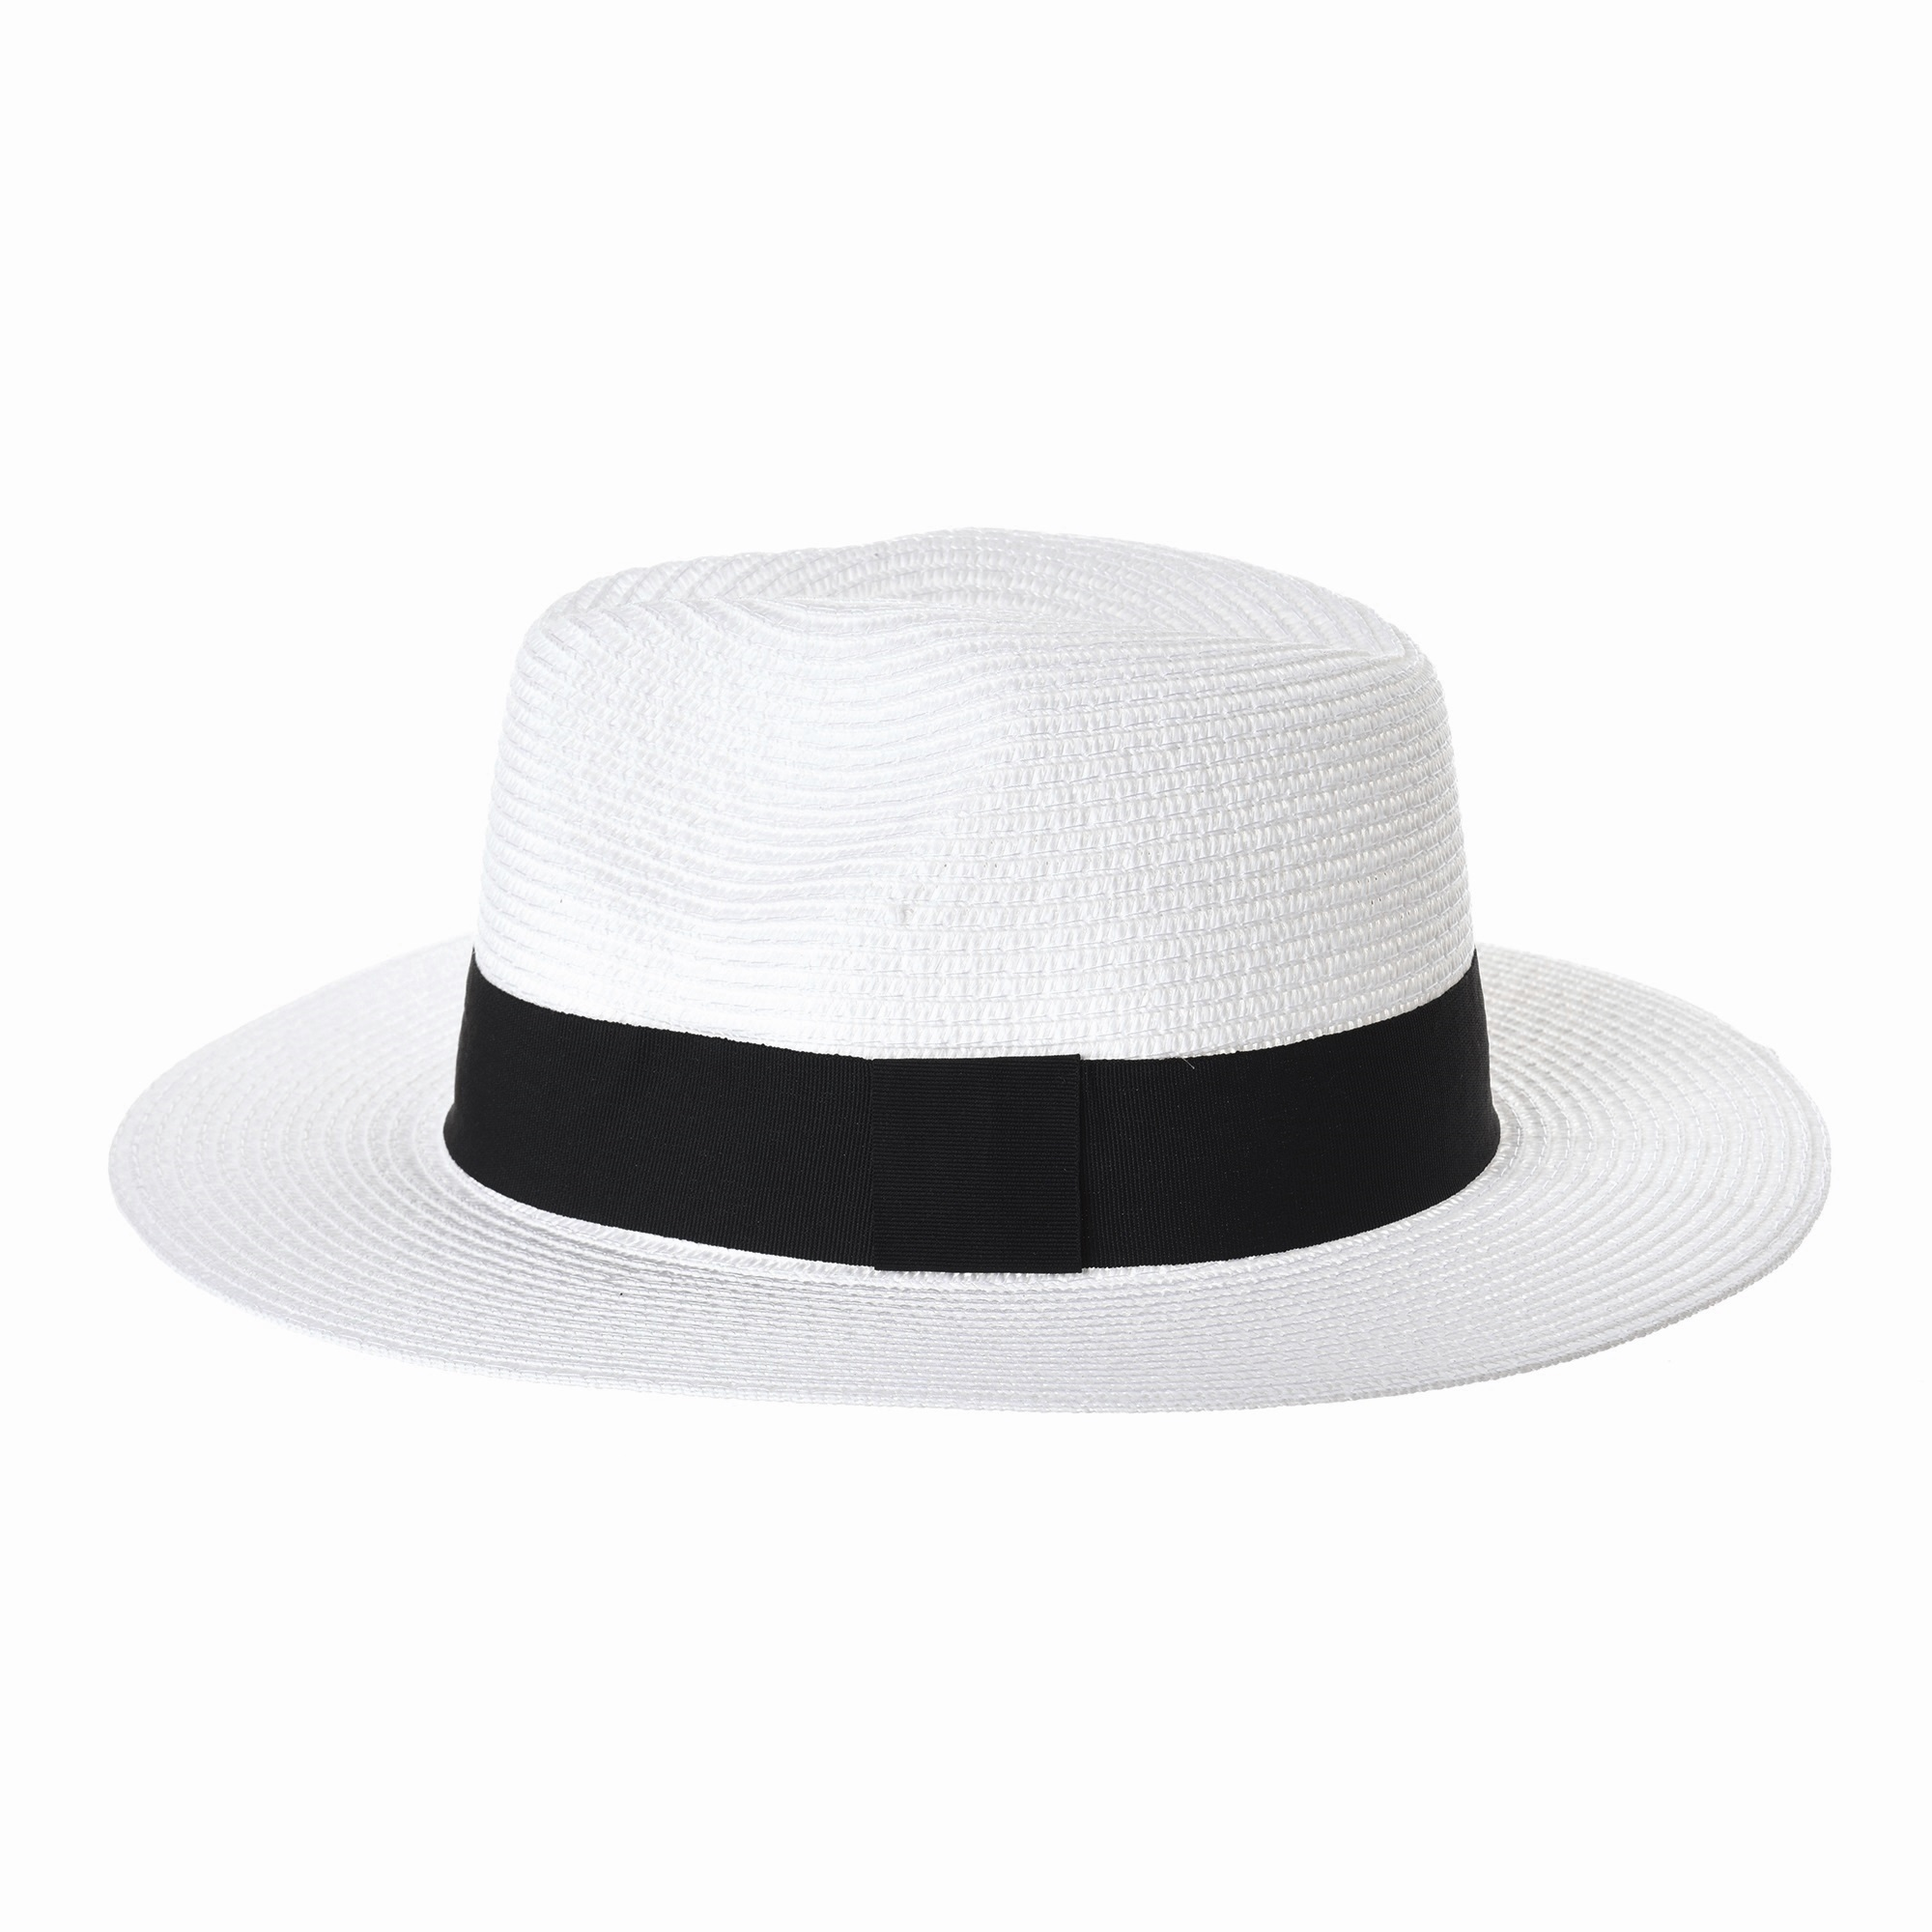 2ec1359e8 Details about WITHMOONS Fedora Panama Hat Black Banded Wide Brim Cool  Summer SL6690